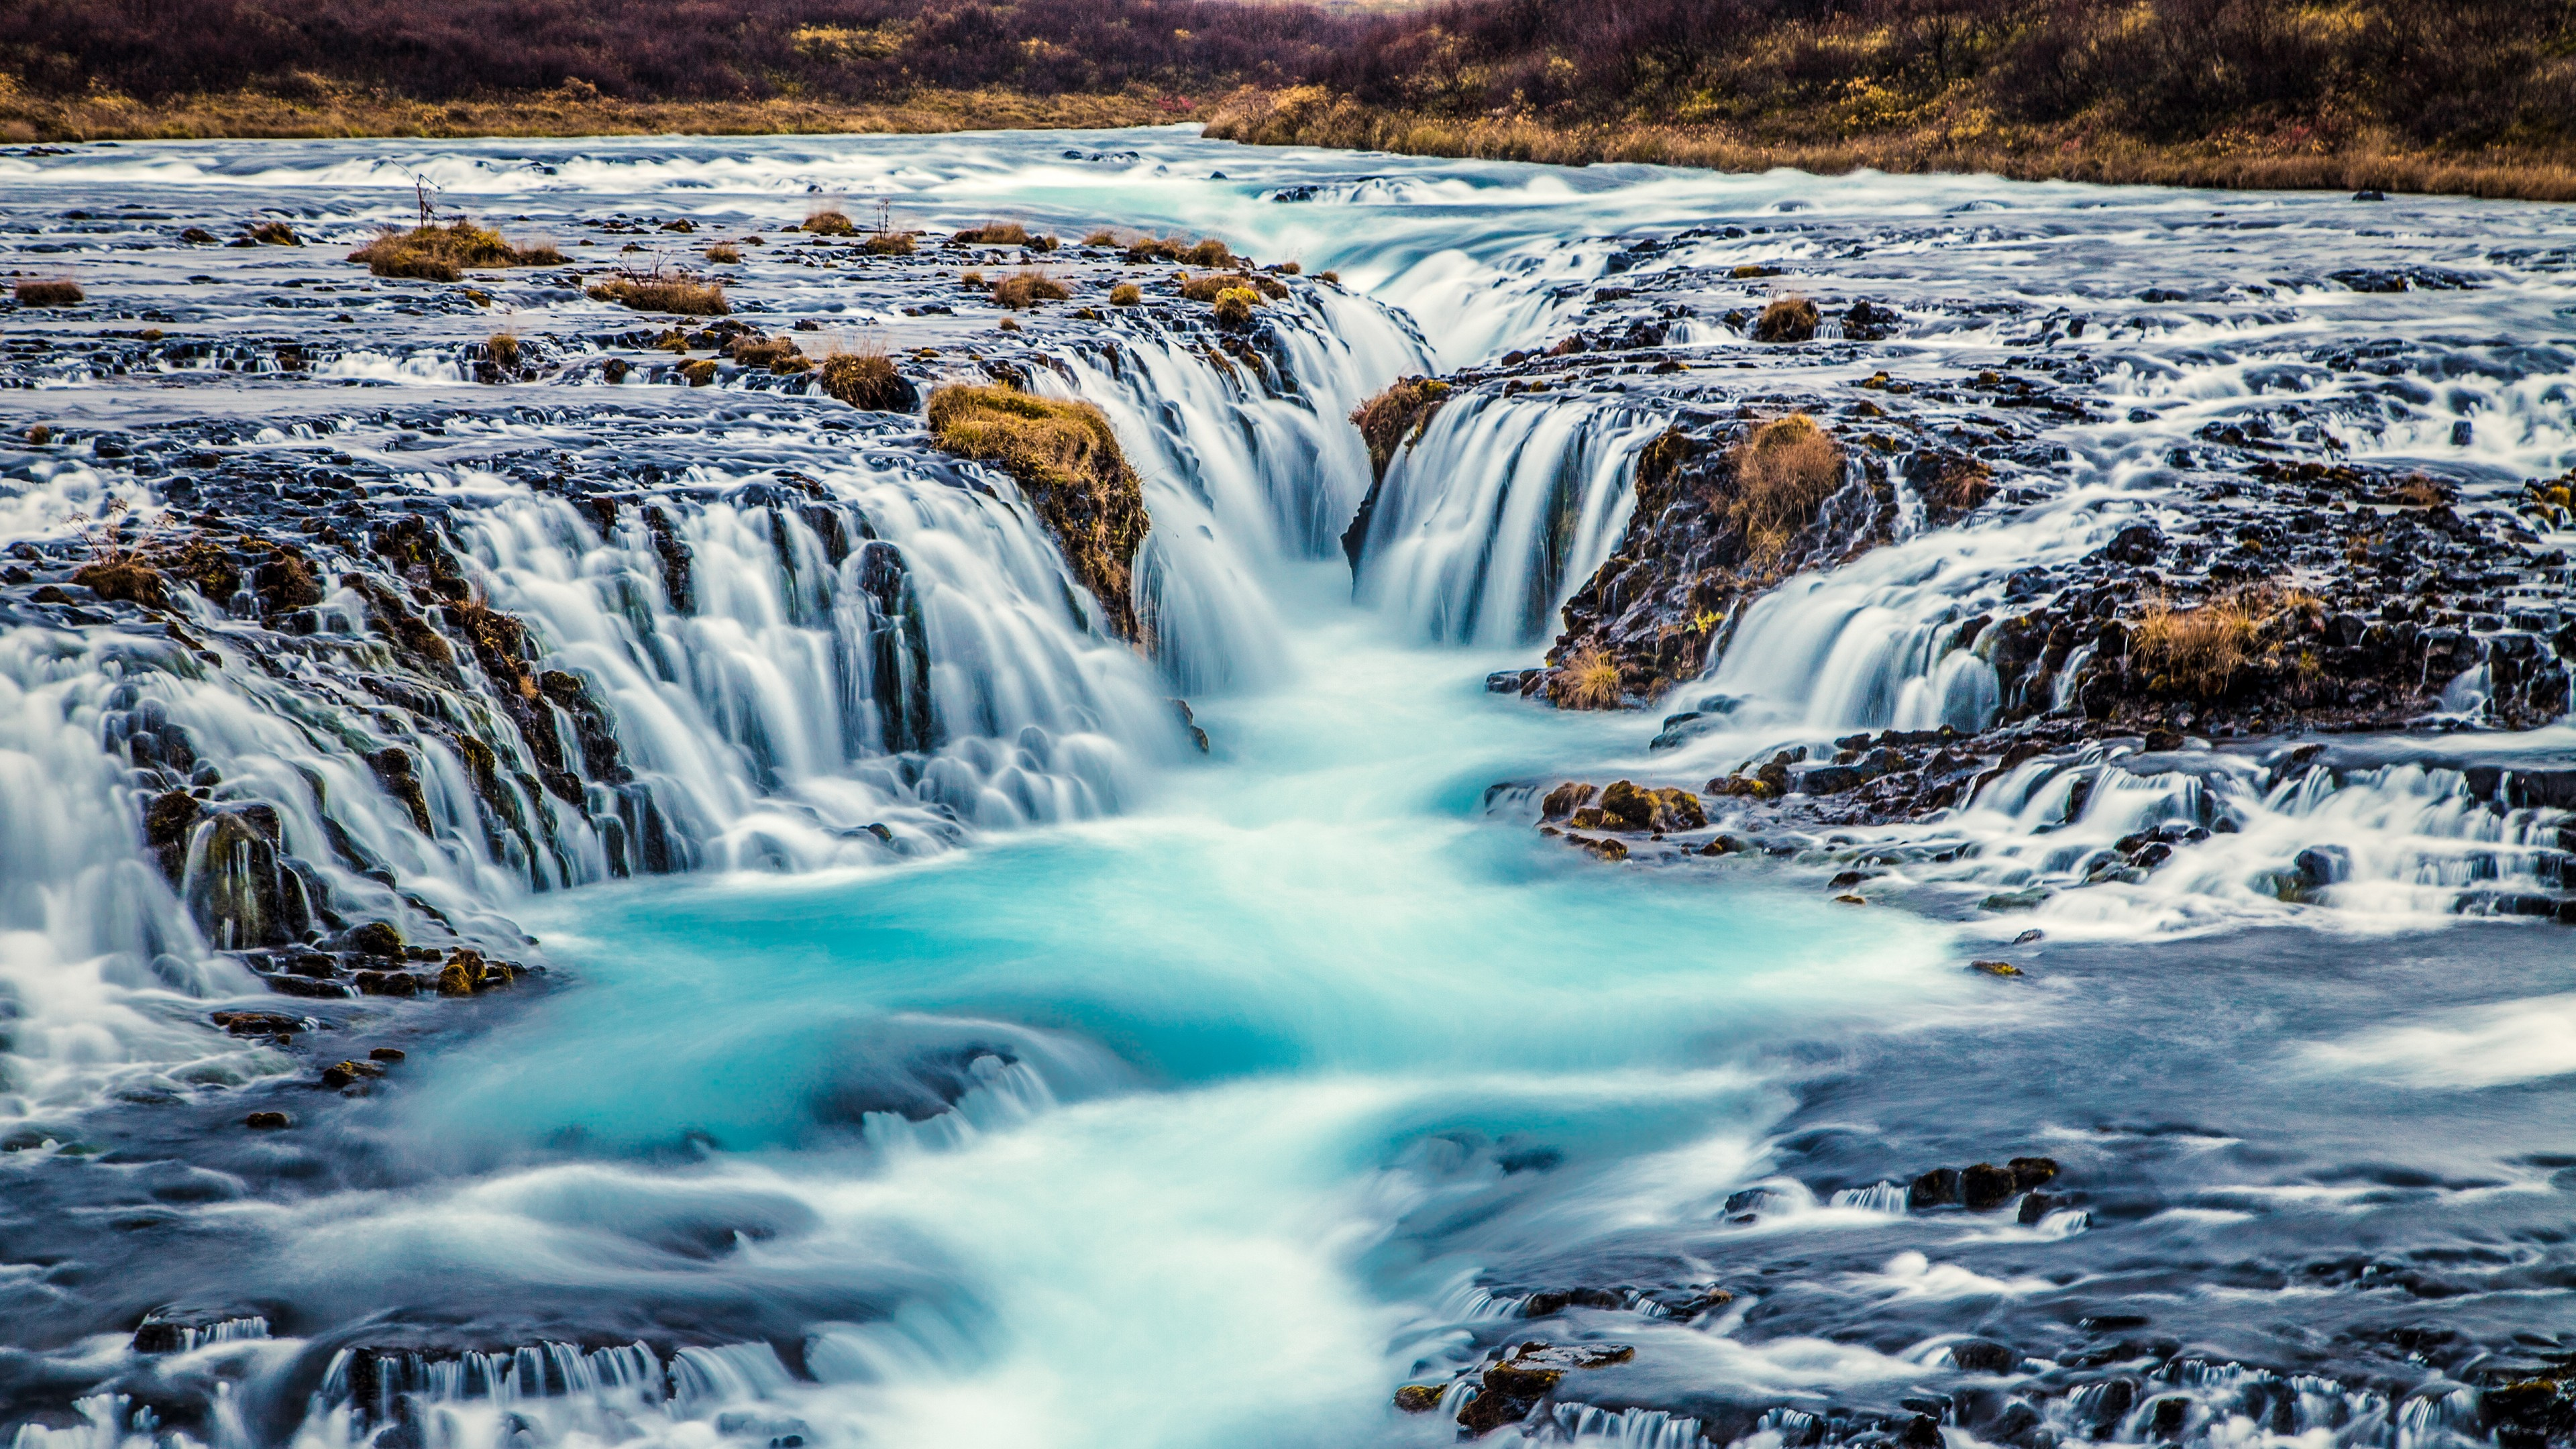 Bruarfoss Waterfall 4K wallpaper 3840x2160